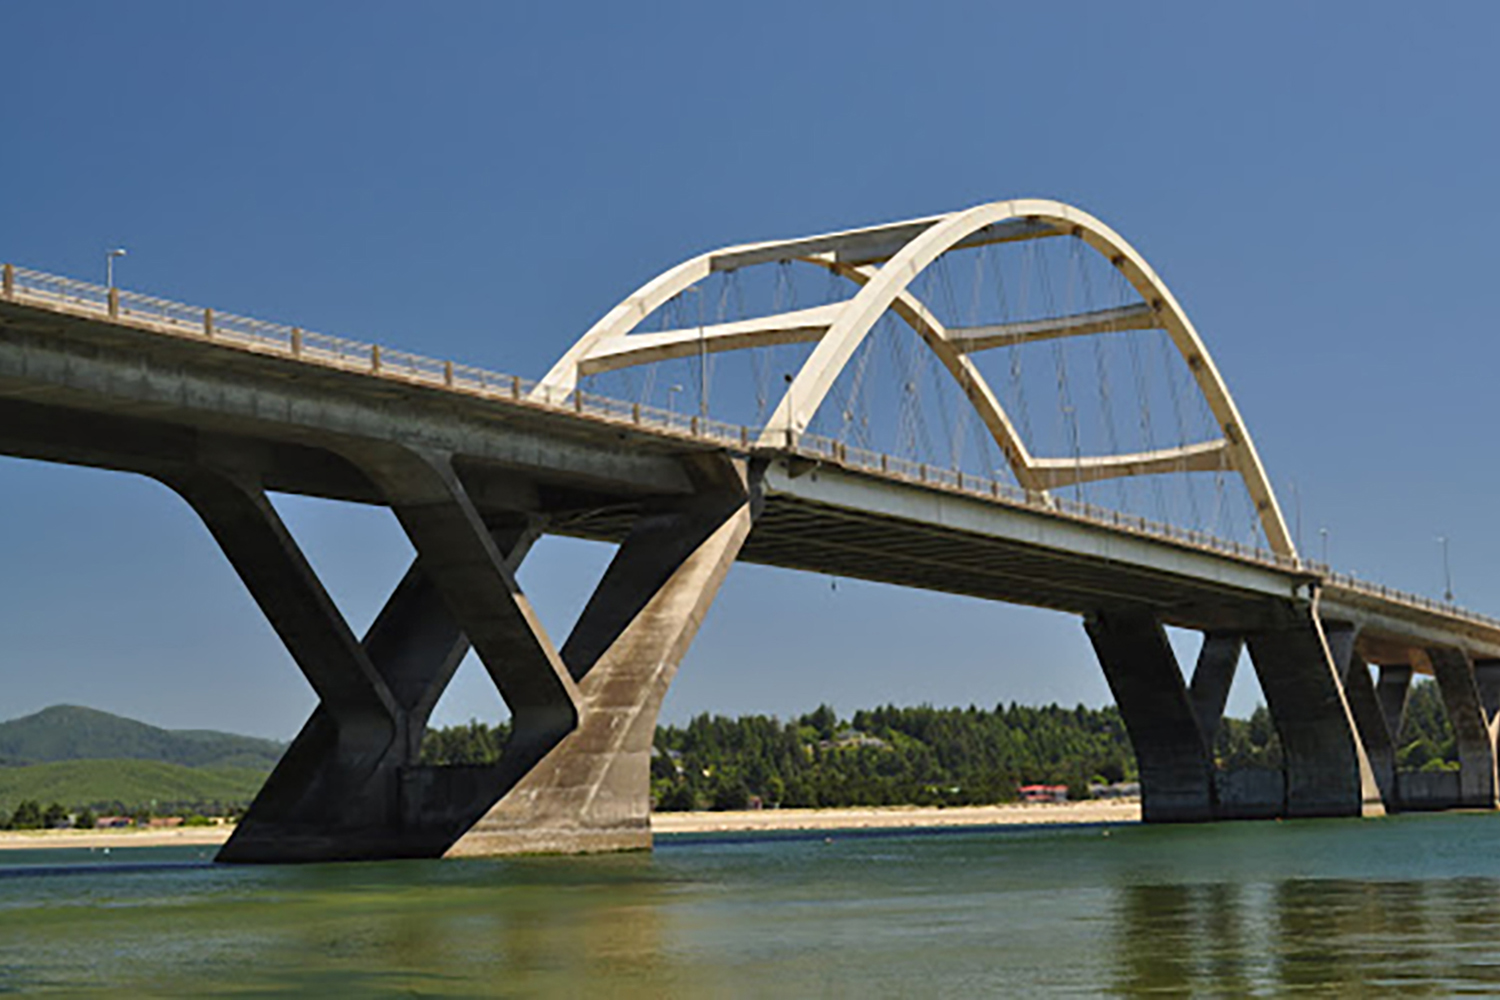 alsea-bridge-image-03-1000x1500.jpg